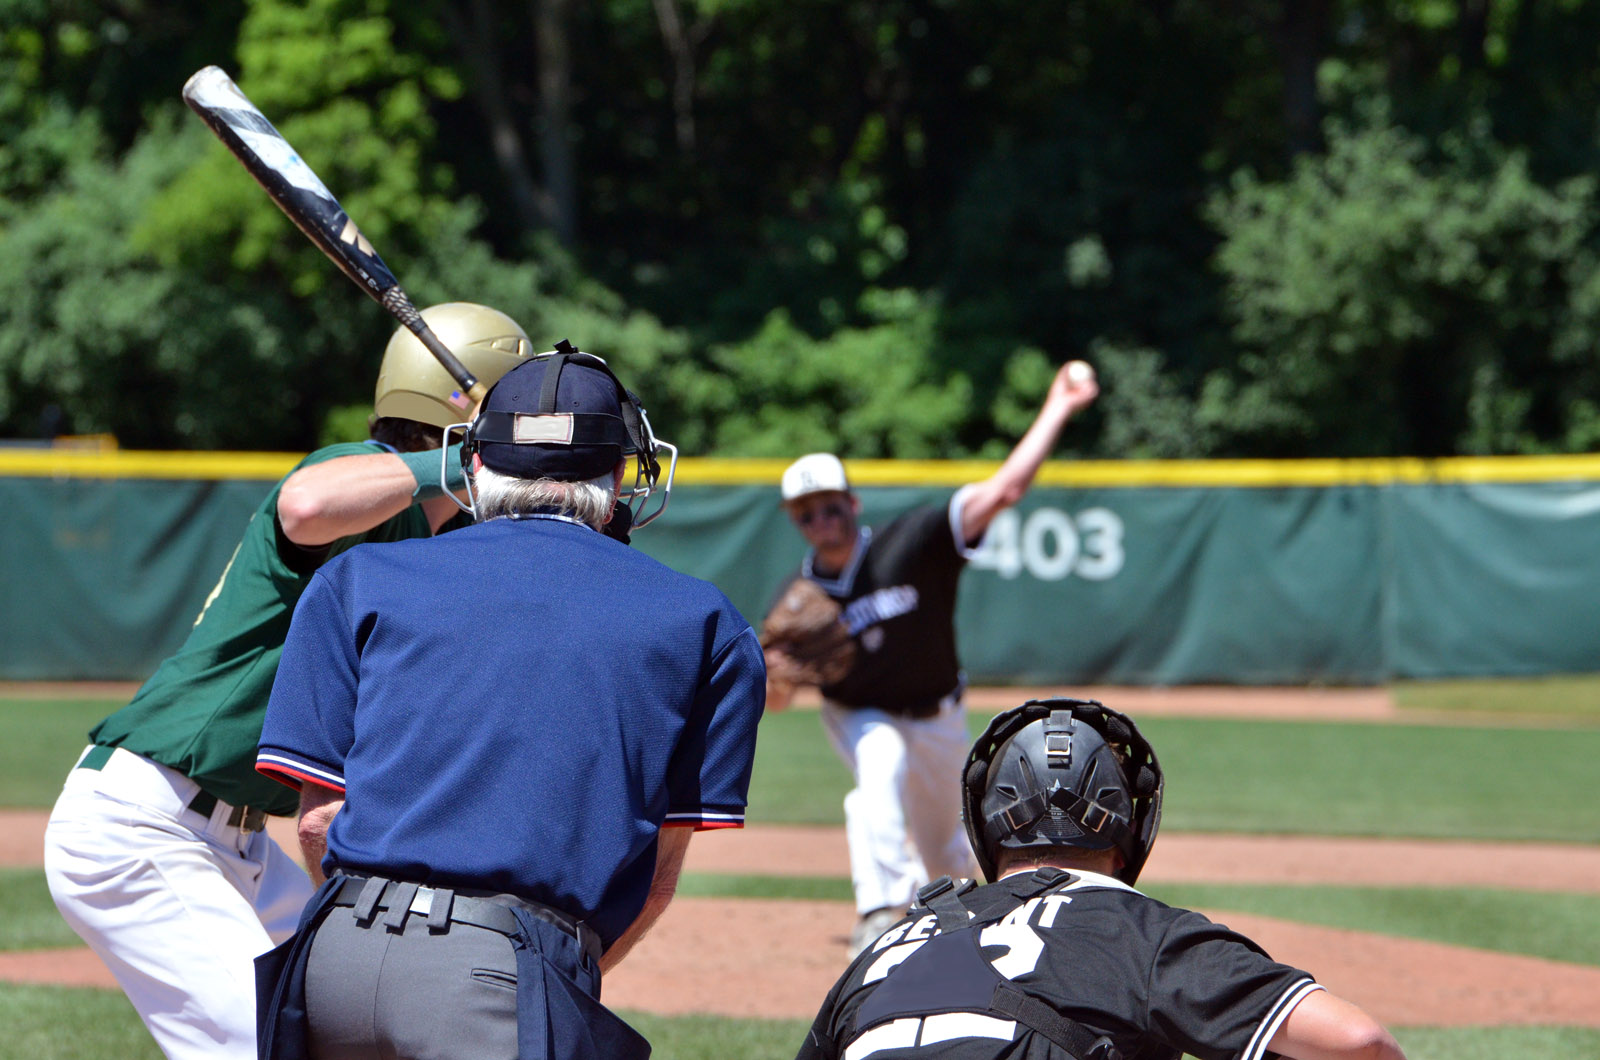 Baseball is one of four sports the MHSAA Network will have finals coverage of this June.